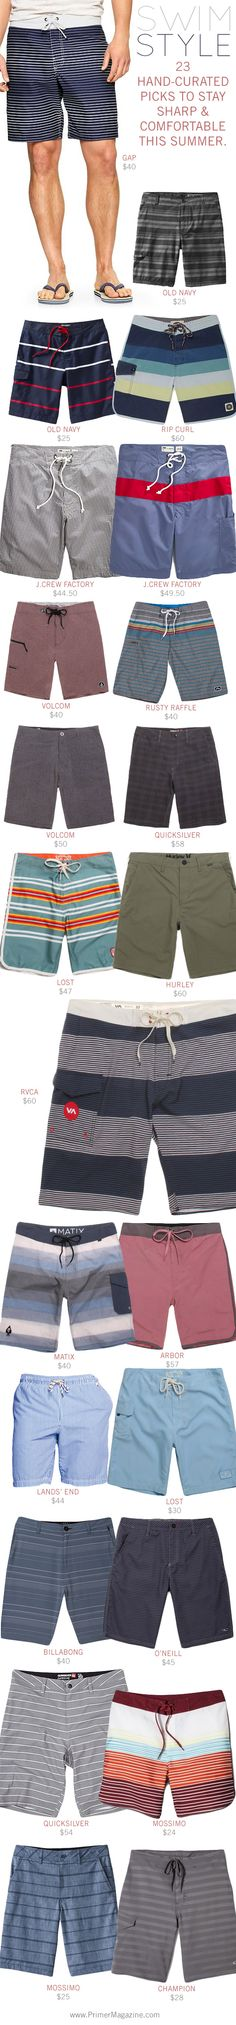 Swim Style: 23 Hand-curated Picks to Stay Sharp & Comfortable This Summer. - Primer